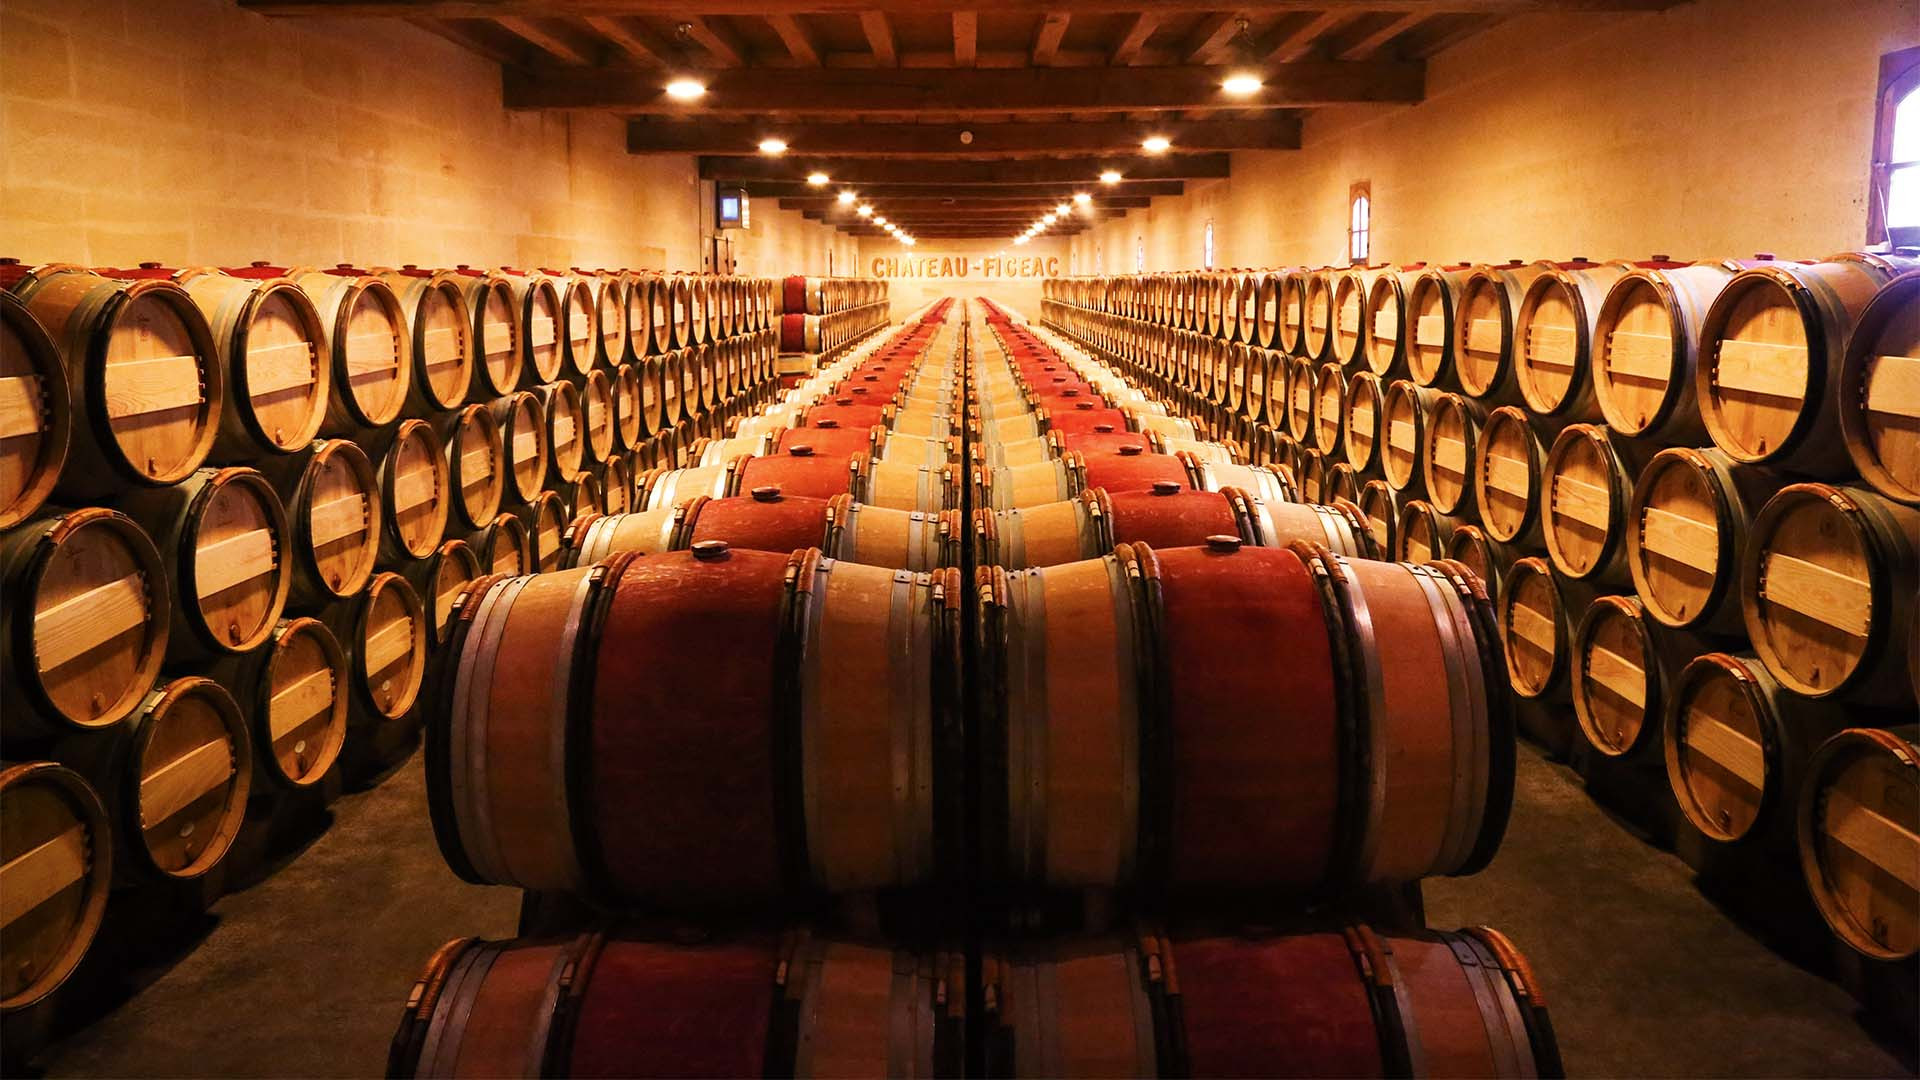 Barrels of wine at Châteua Figeac winery, St-Émilion, Bordeaux